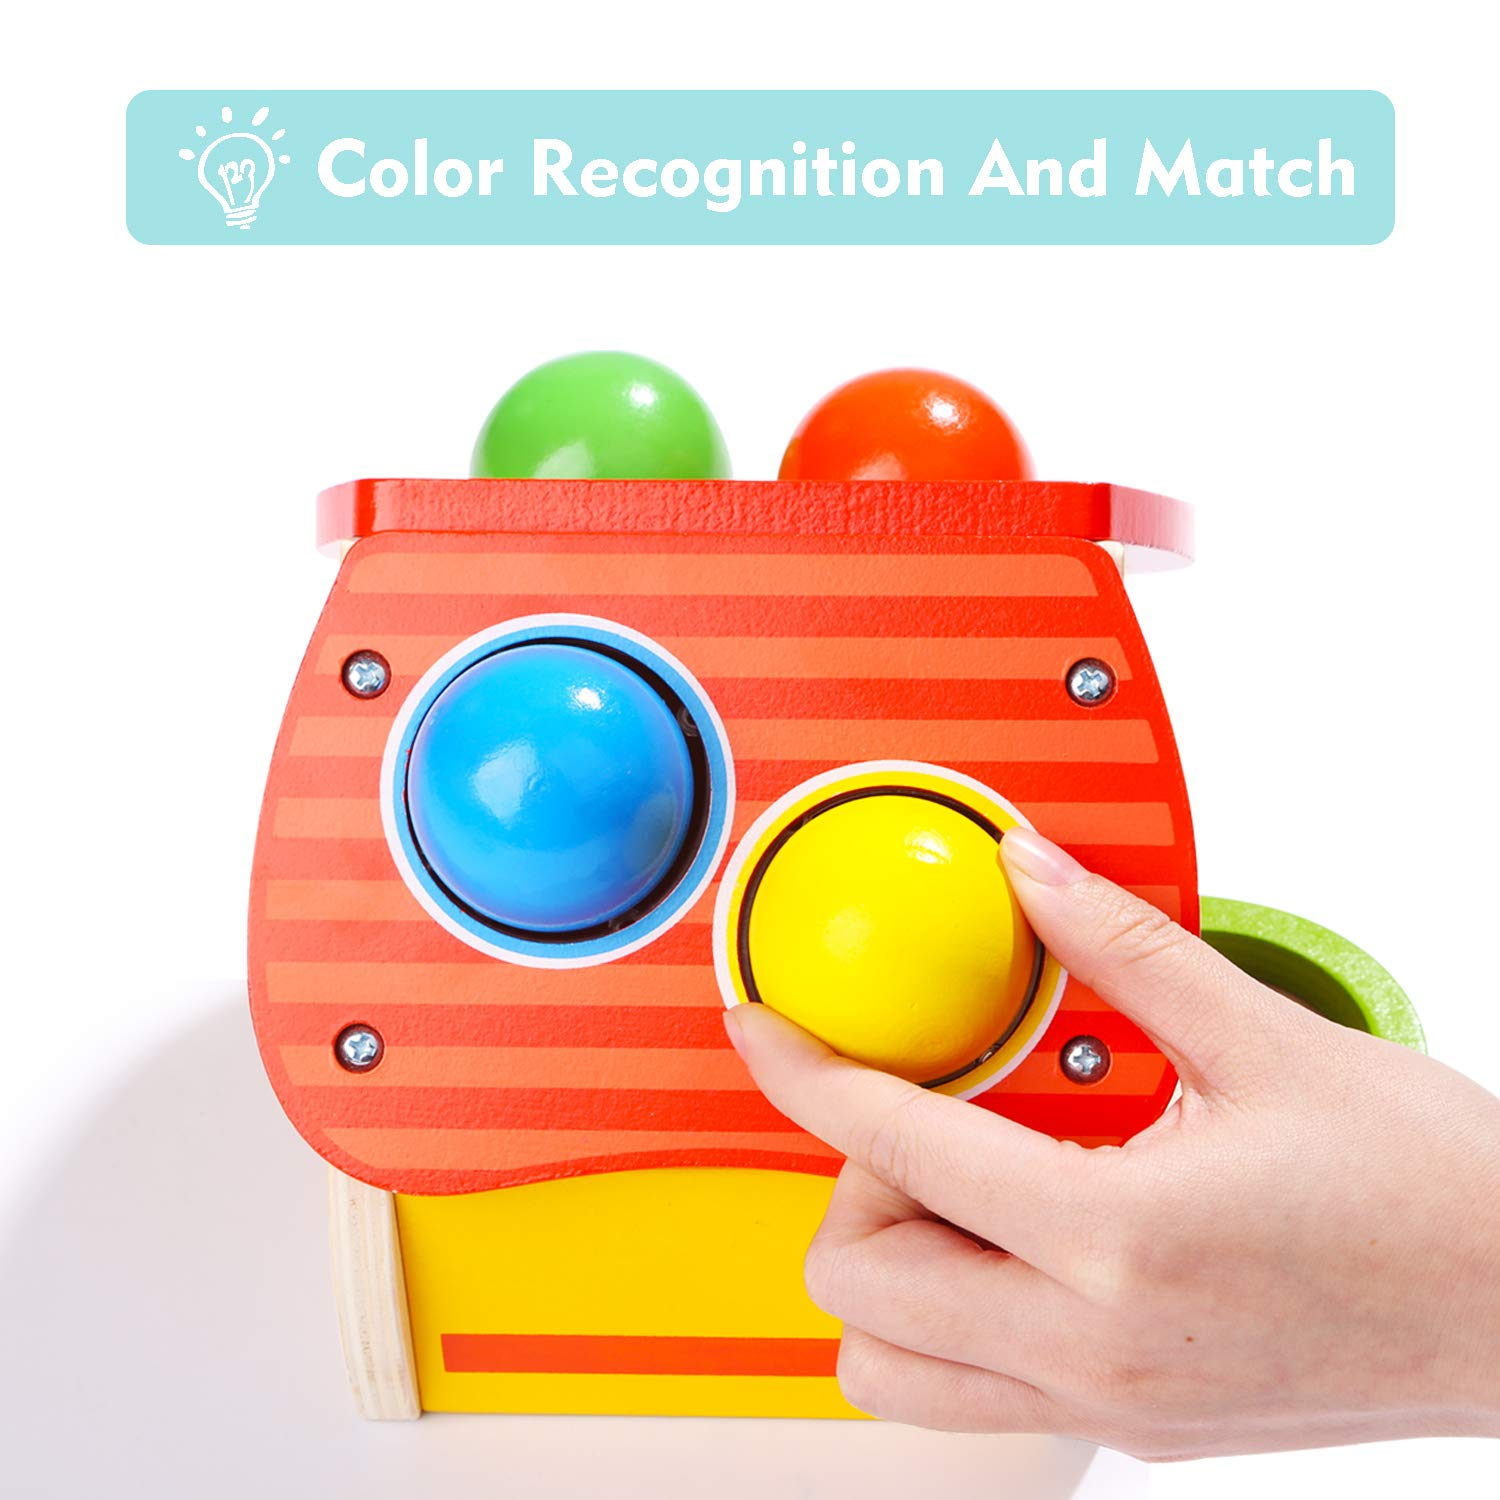 TOP BRIGHT Hammer Toy for 1 2 Year Old Boy and Girl Gifts Learning Wooden Montessori Toys for Toddlers Pounding and Color Matching Game with Ball Mallet by TOP BRIGHT (Image #3)